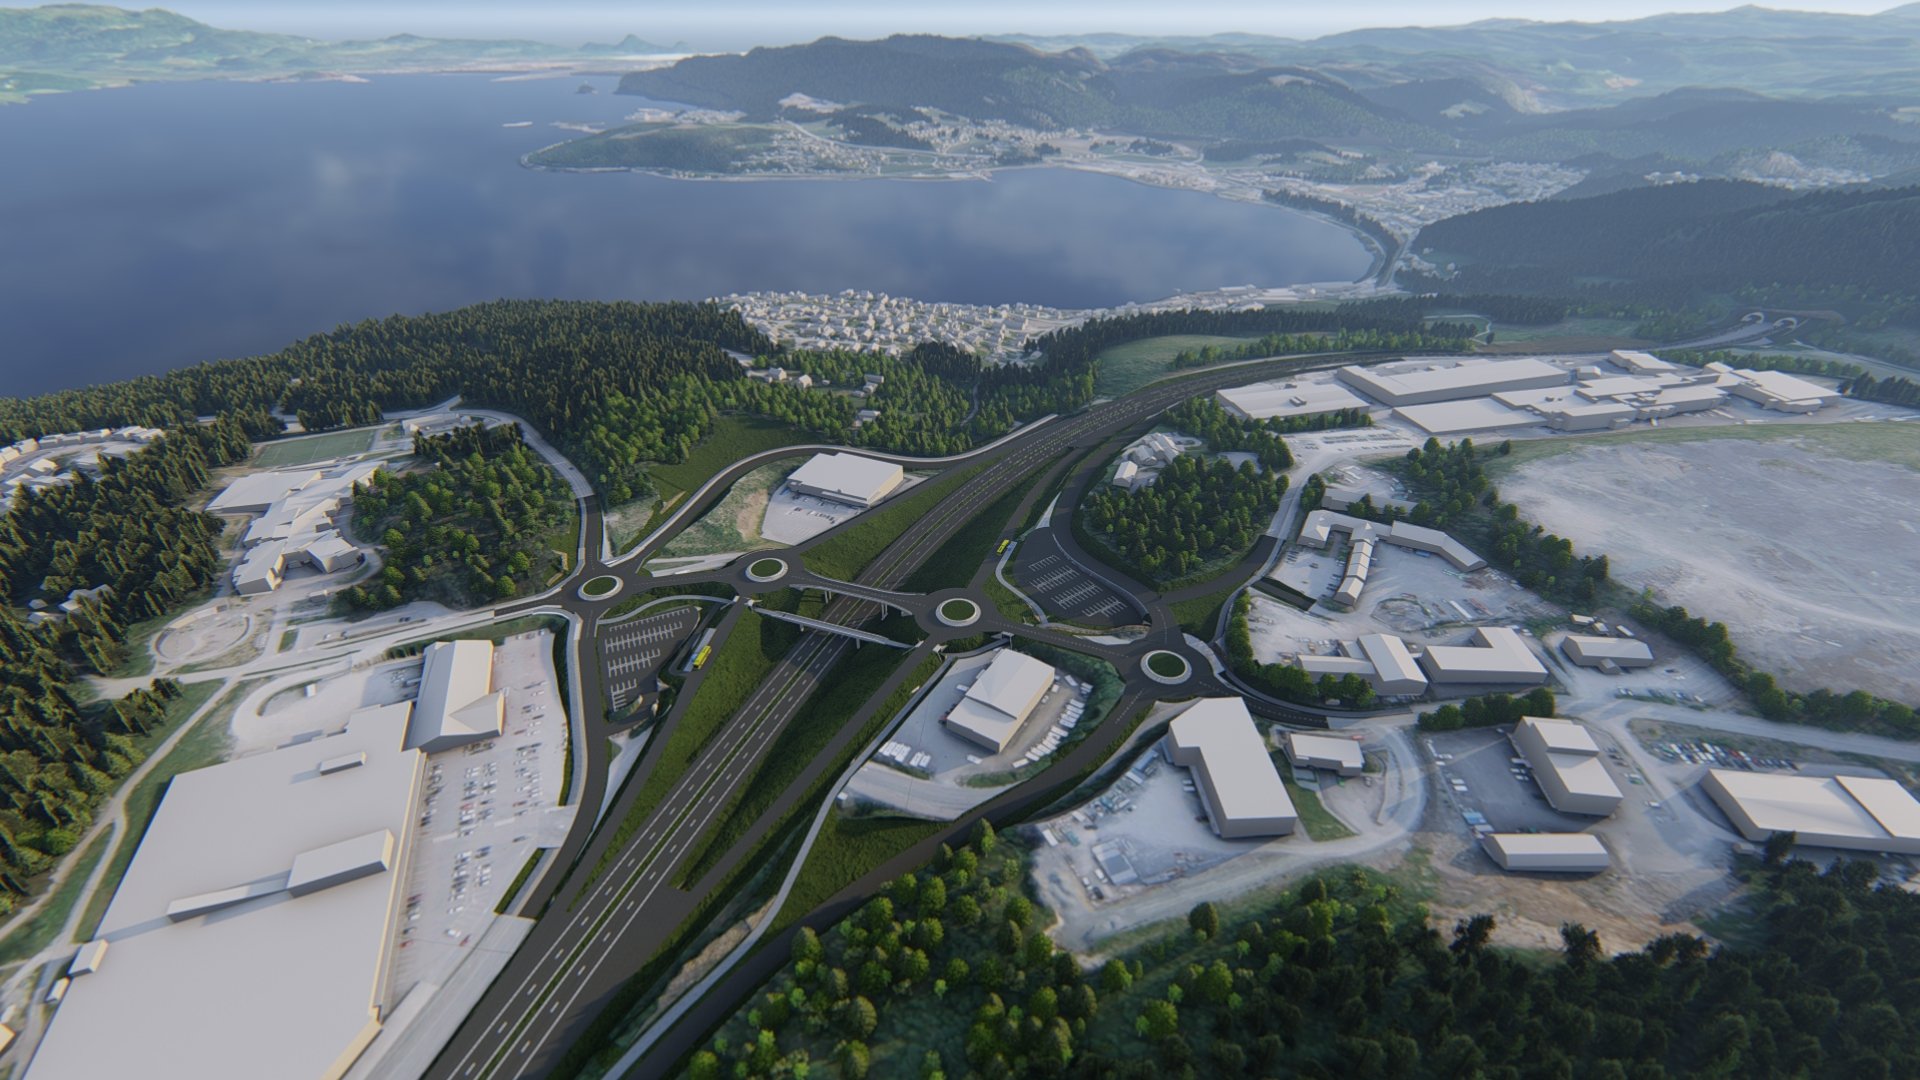 How the new E6 highway by Sveberg outside of Trondheim will look after construction is completed.